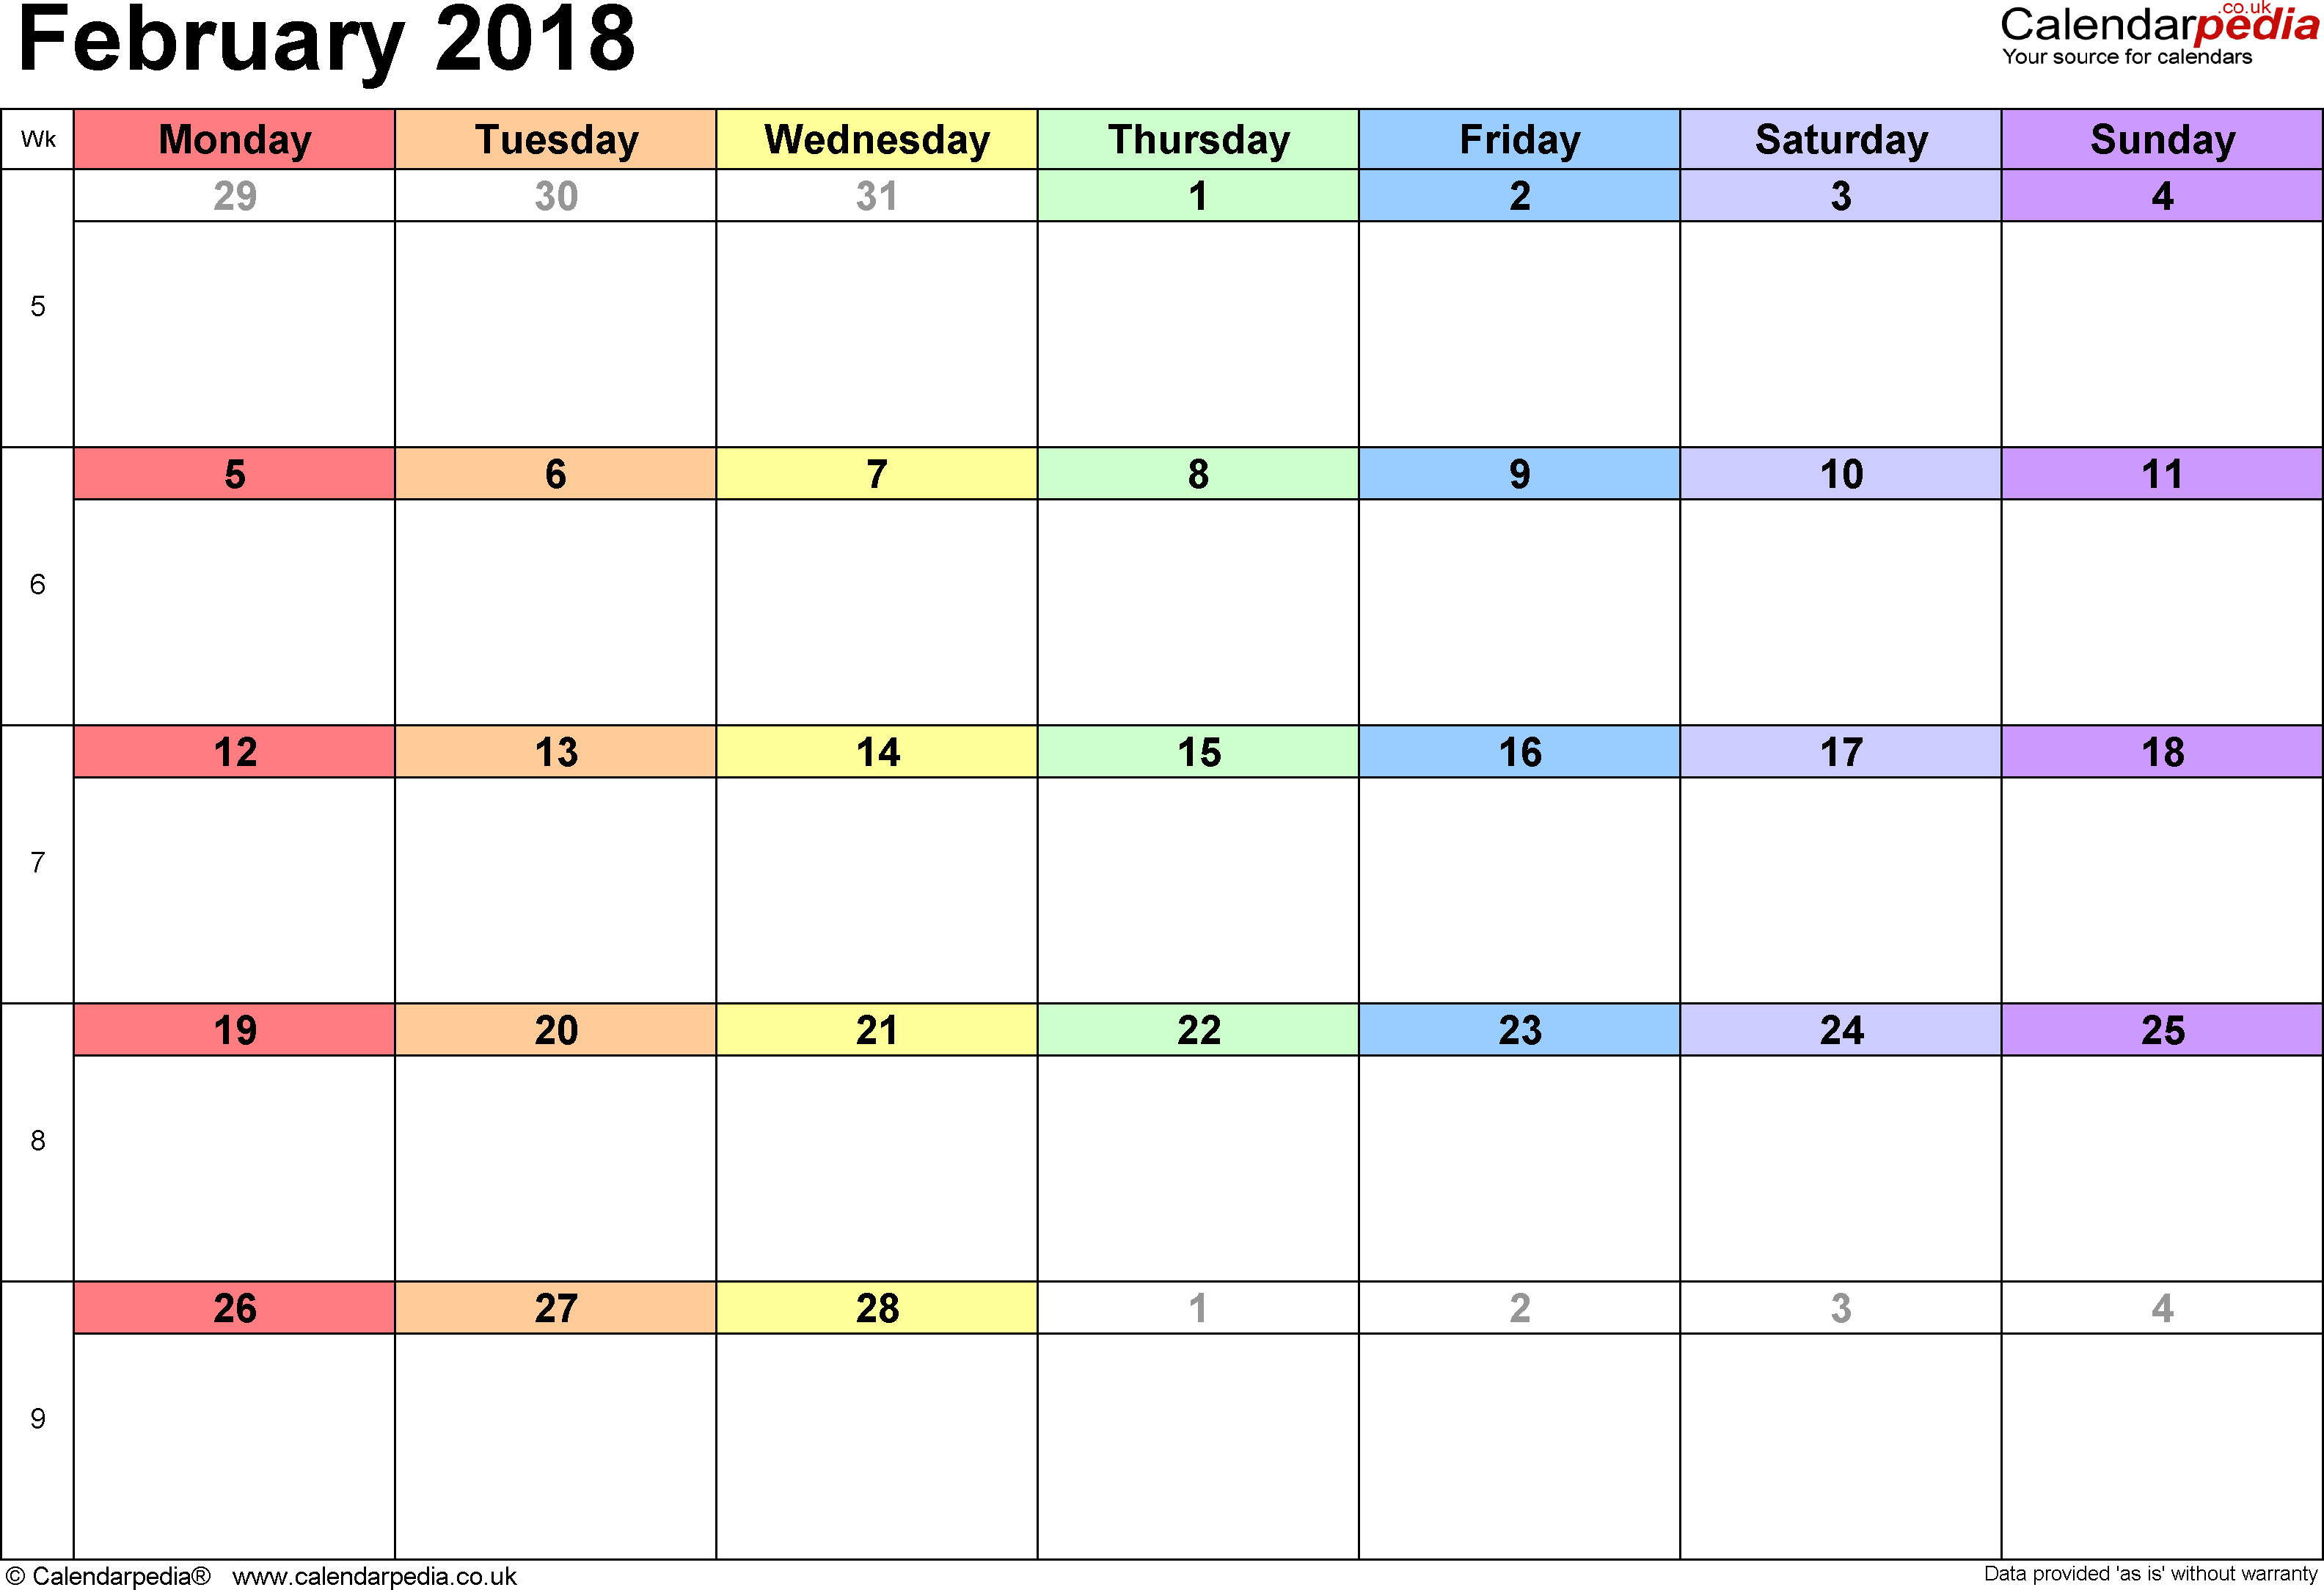 Calendar February 2018, landscape orientation, 1 page, with UK bank holidays and week numbers